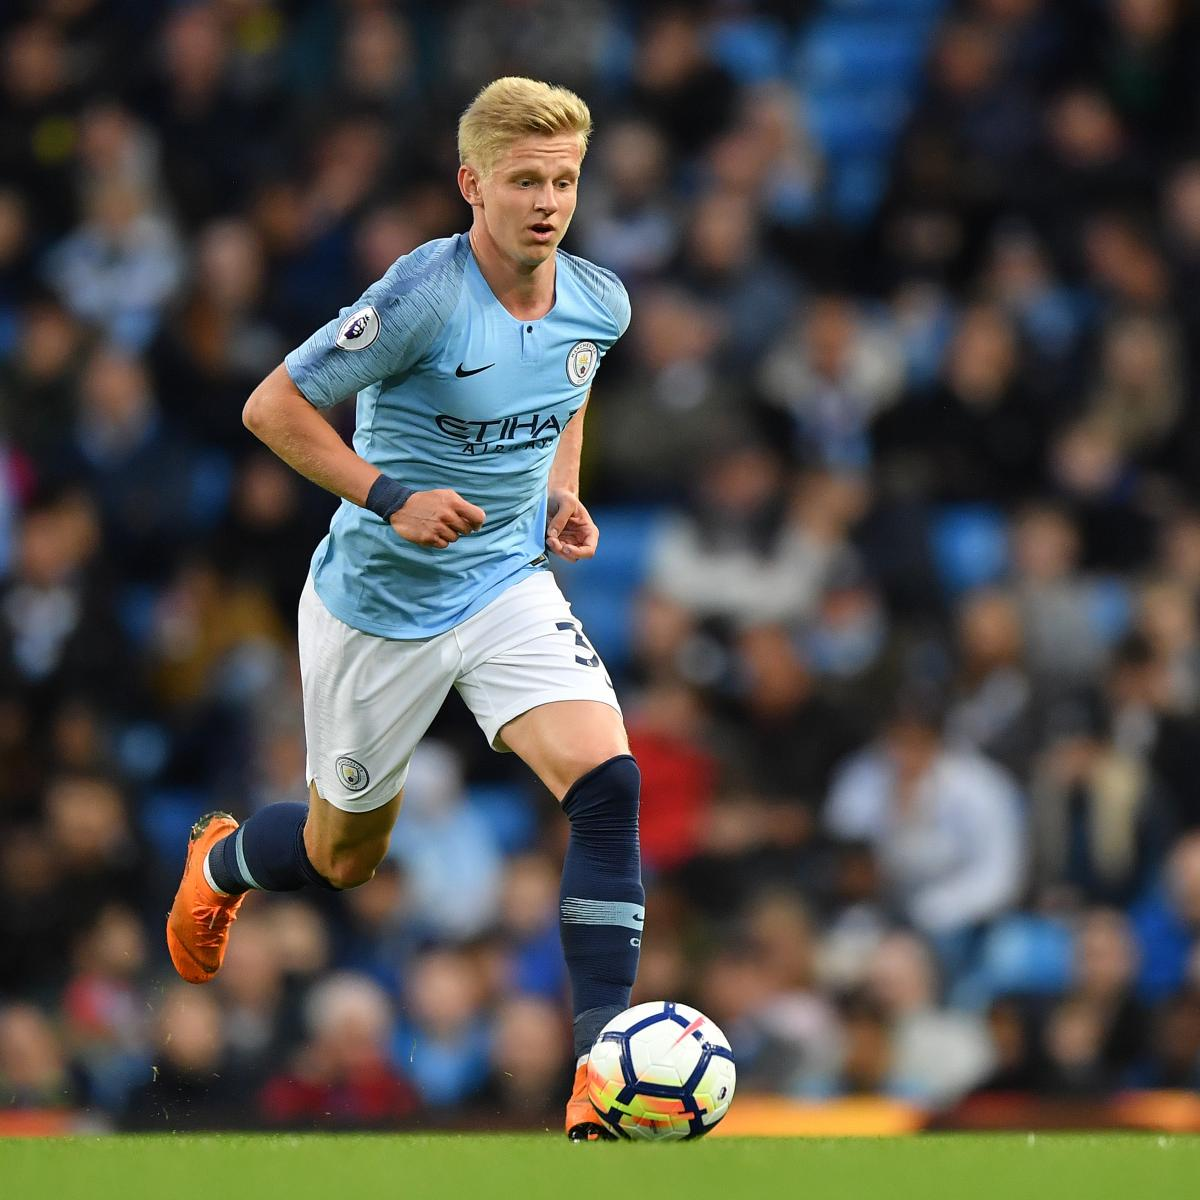 Manchester City Transfer News: Oleksandr Zinchenko's Wolves Deal Reportedly Near